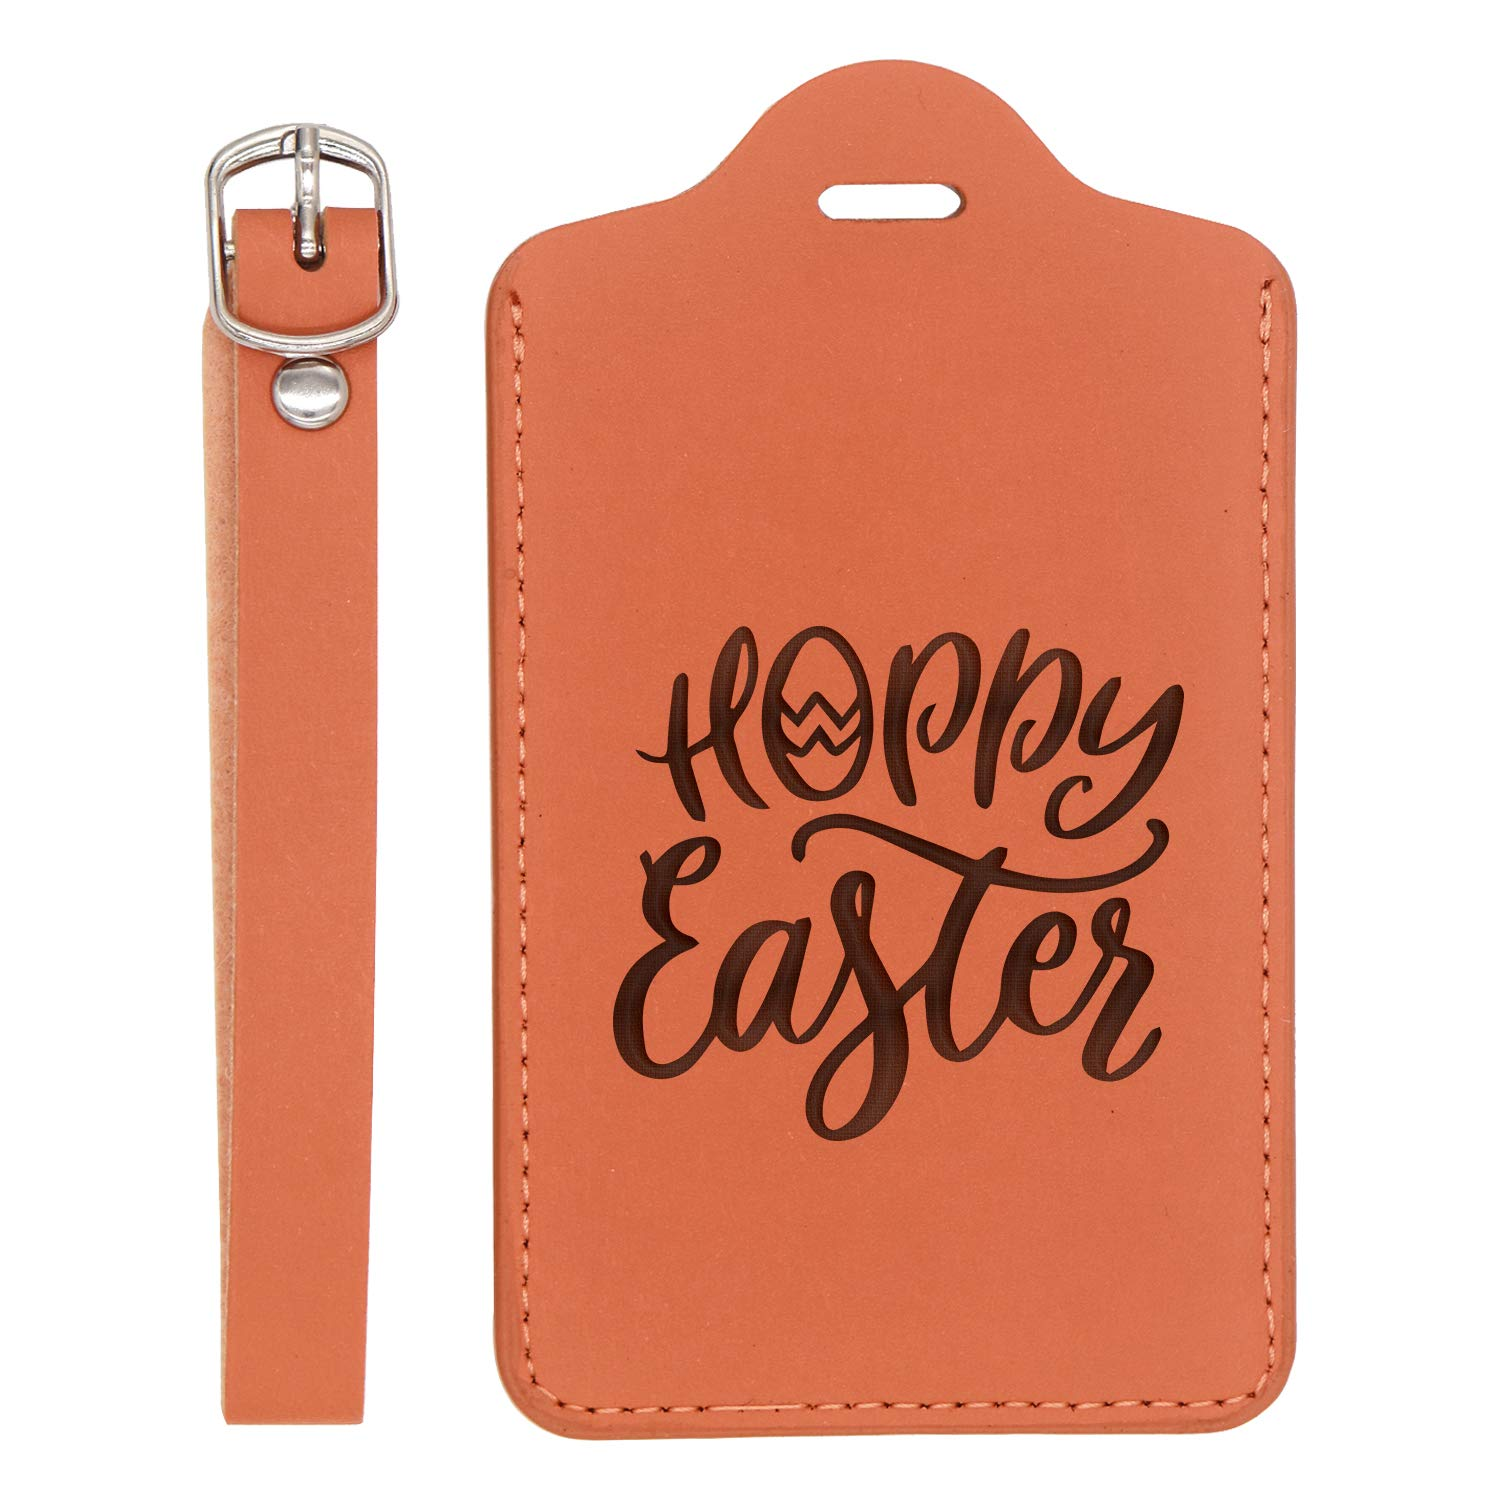 Easter 3 Engraved Synthetic Pu Leather Luggage Tag Handcrafted By Mastercraftsmen For Any Type Of Luggage - United States Standard London Tan - Set Of 2